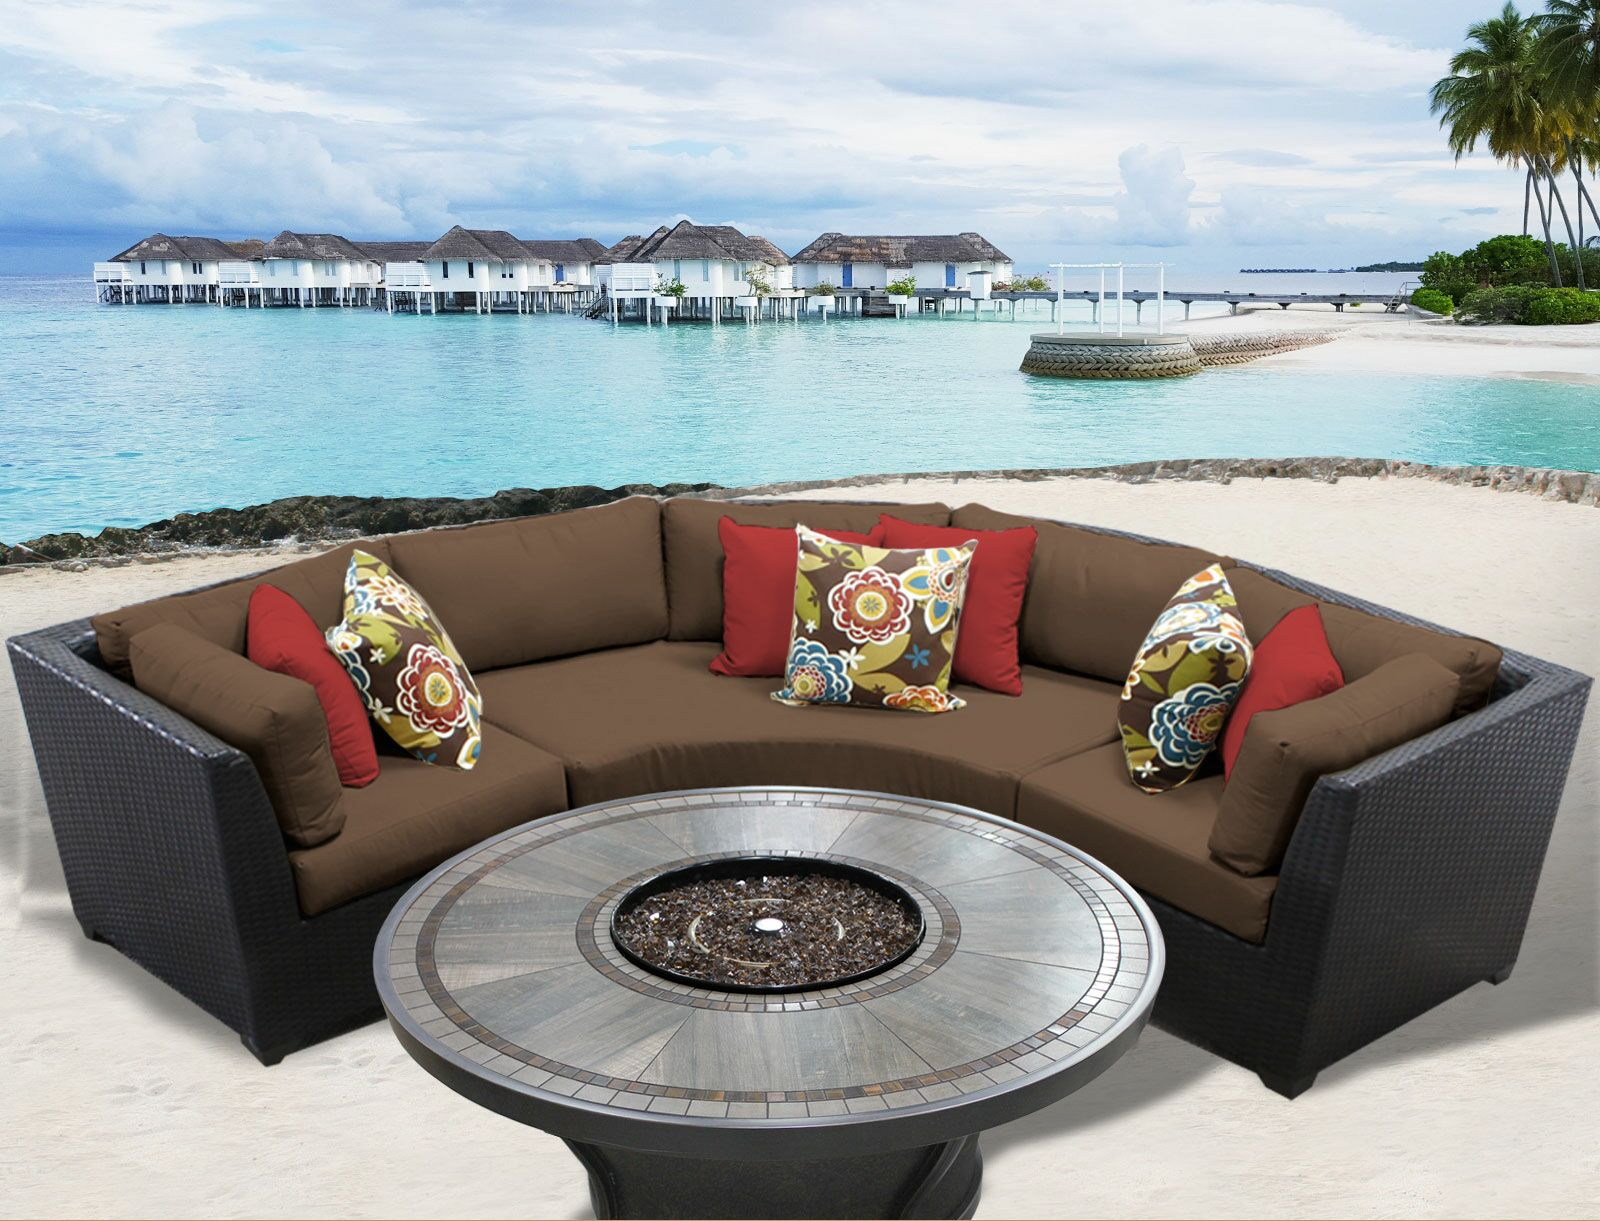 Barbados 4 Piece Rattan Sectional Set with Cushions Cushion Color: Cocoa